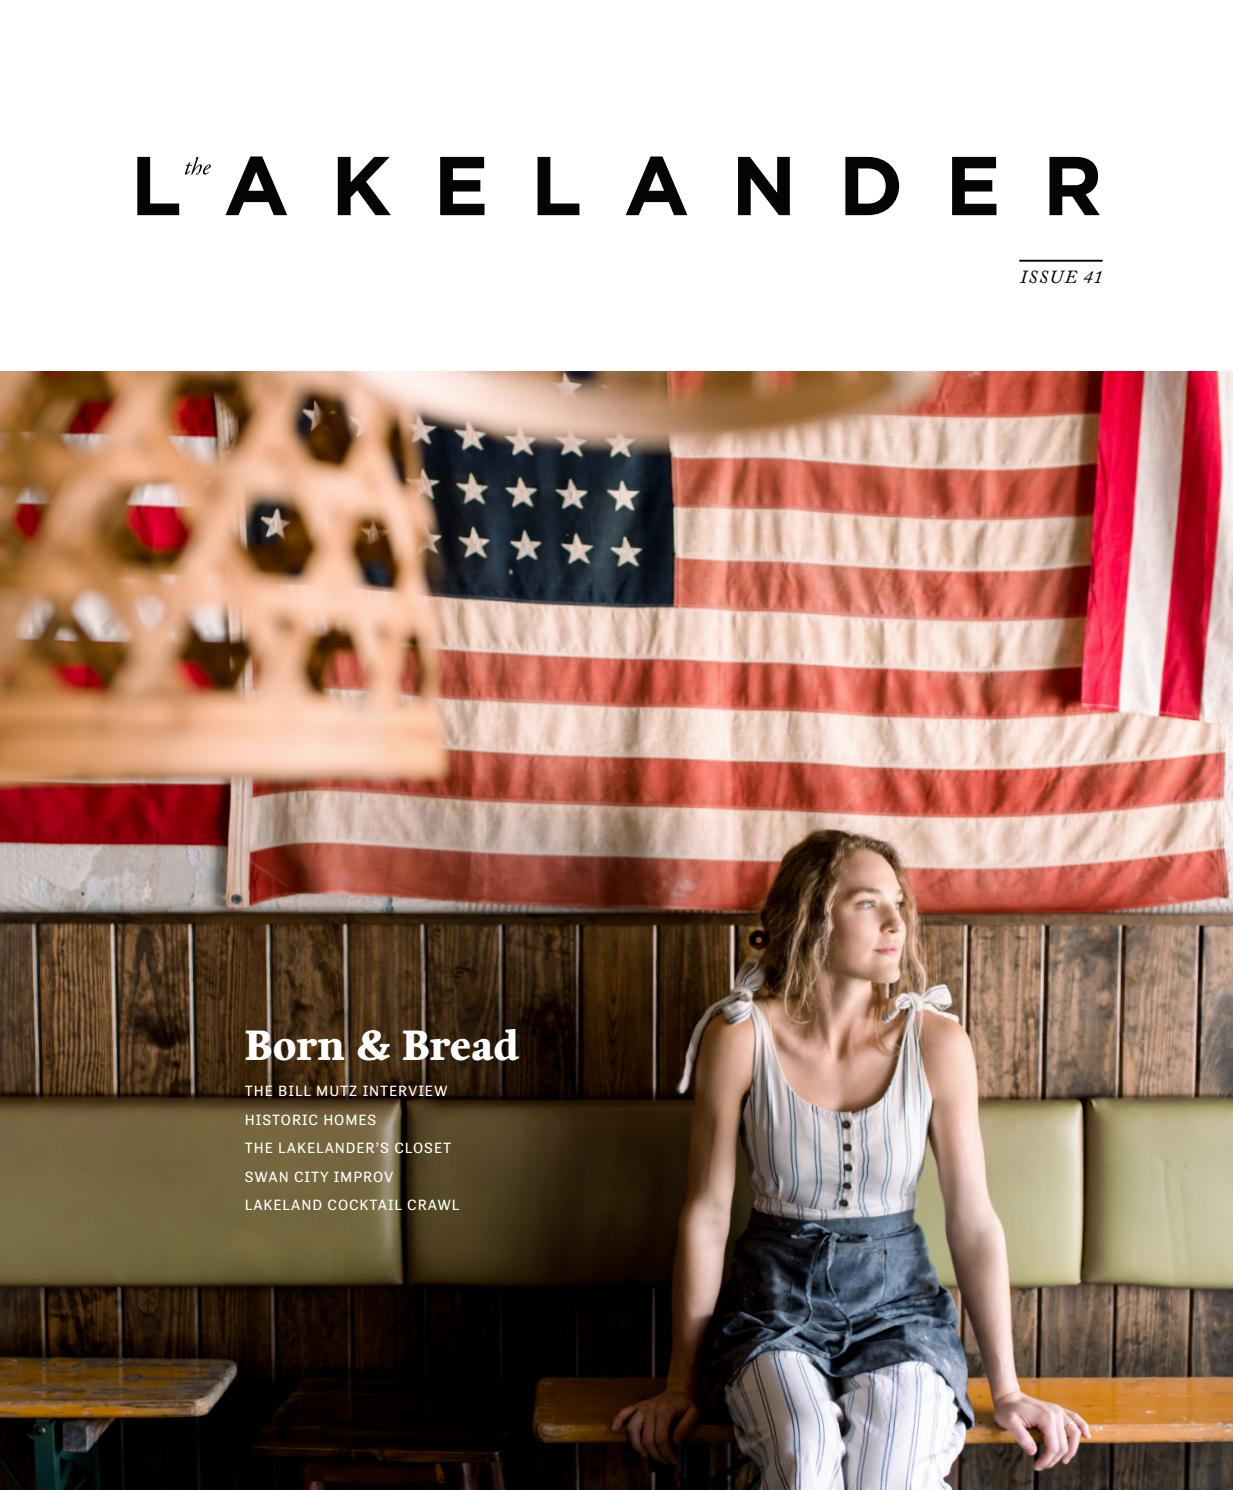 The Lakelander - Issue 41The Lakelander - Issuu inside 2021 -2020 School Calendar Bartow Fl Polk County Schools